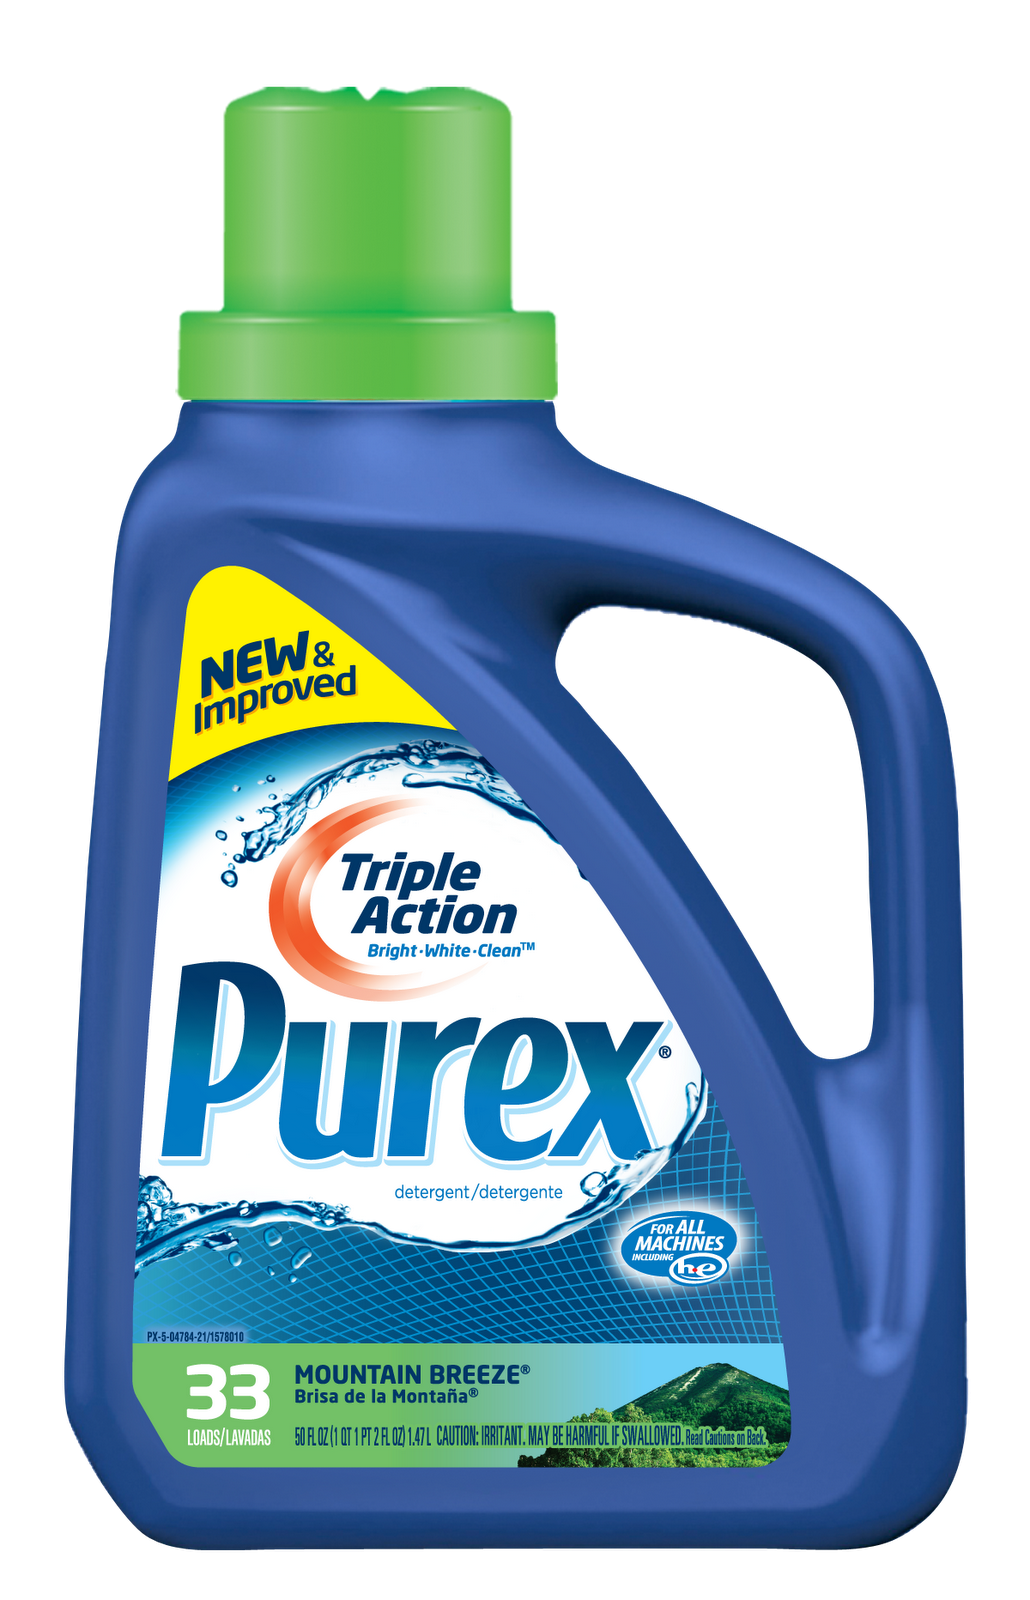 Purex Triple Action Liquid Detergent Product Review Detergente